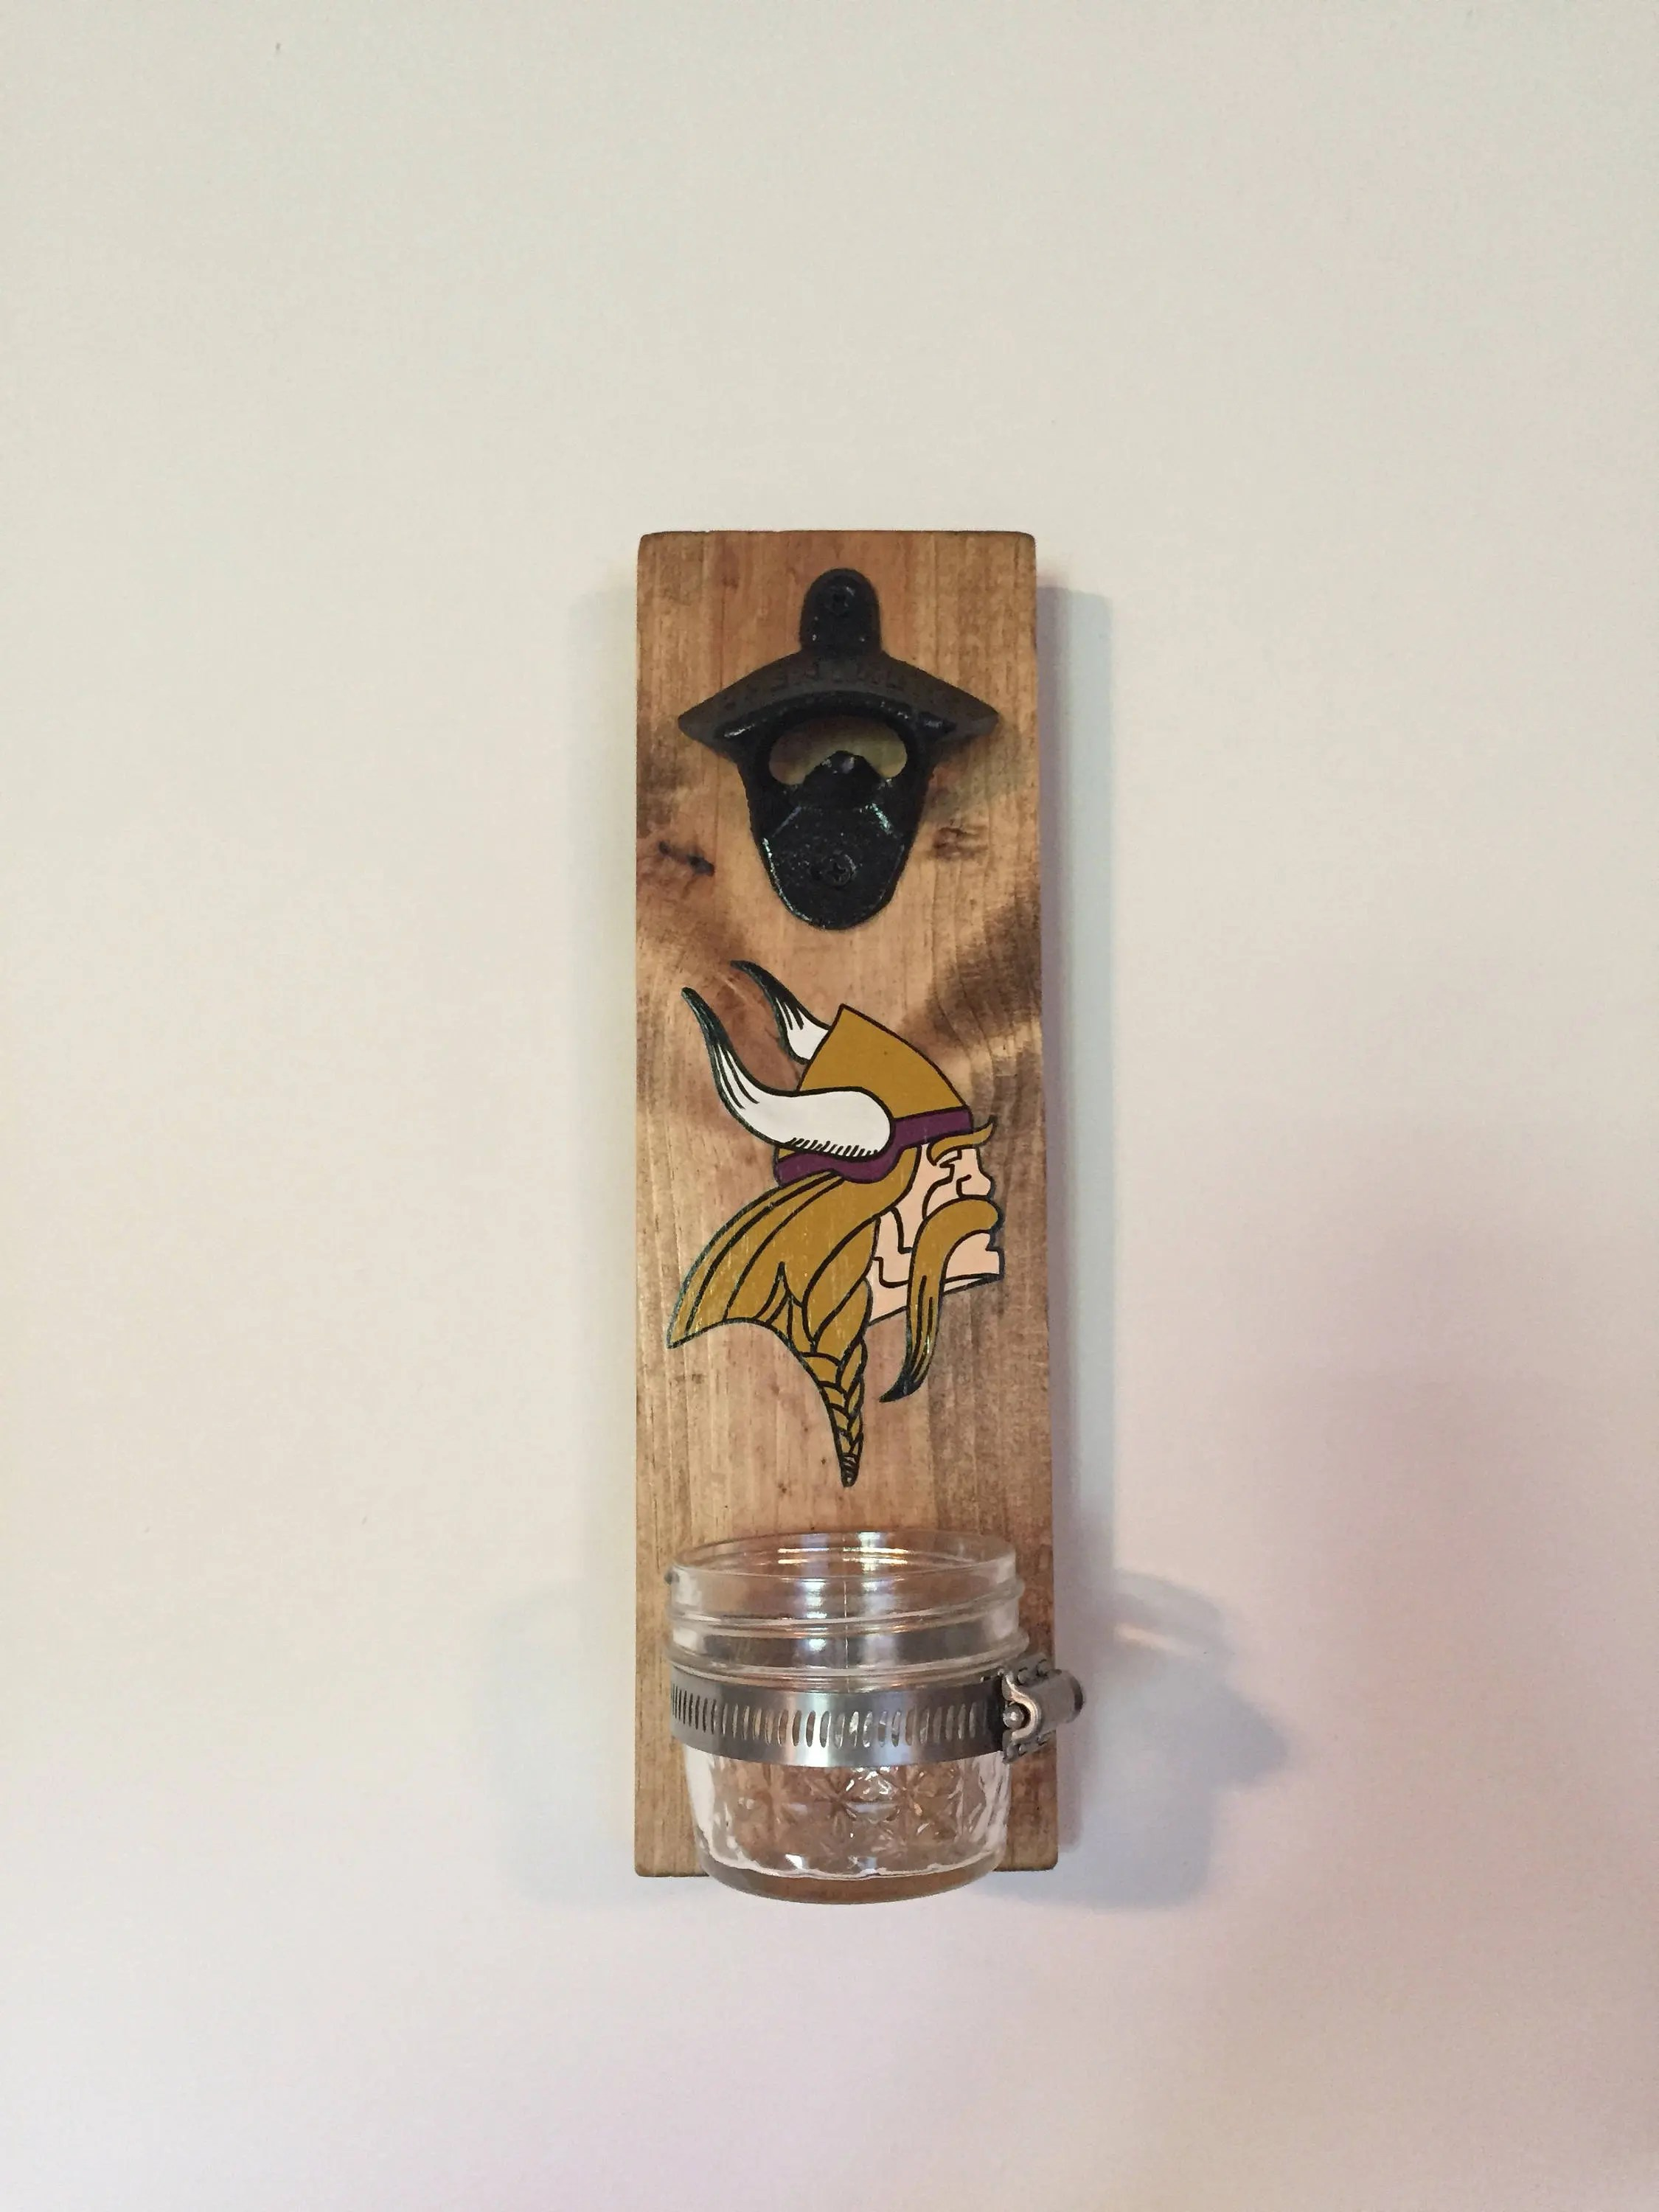 Wall Mounted Beer Opener And Catcher Sports Team Wall Mounted Bottle Opener With Cap Catcher Etsy